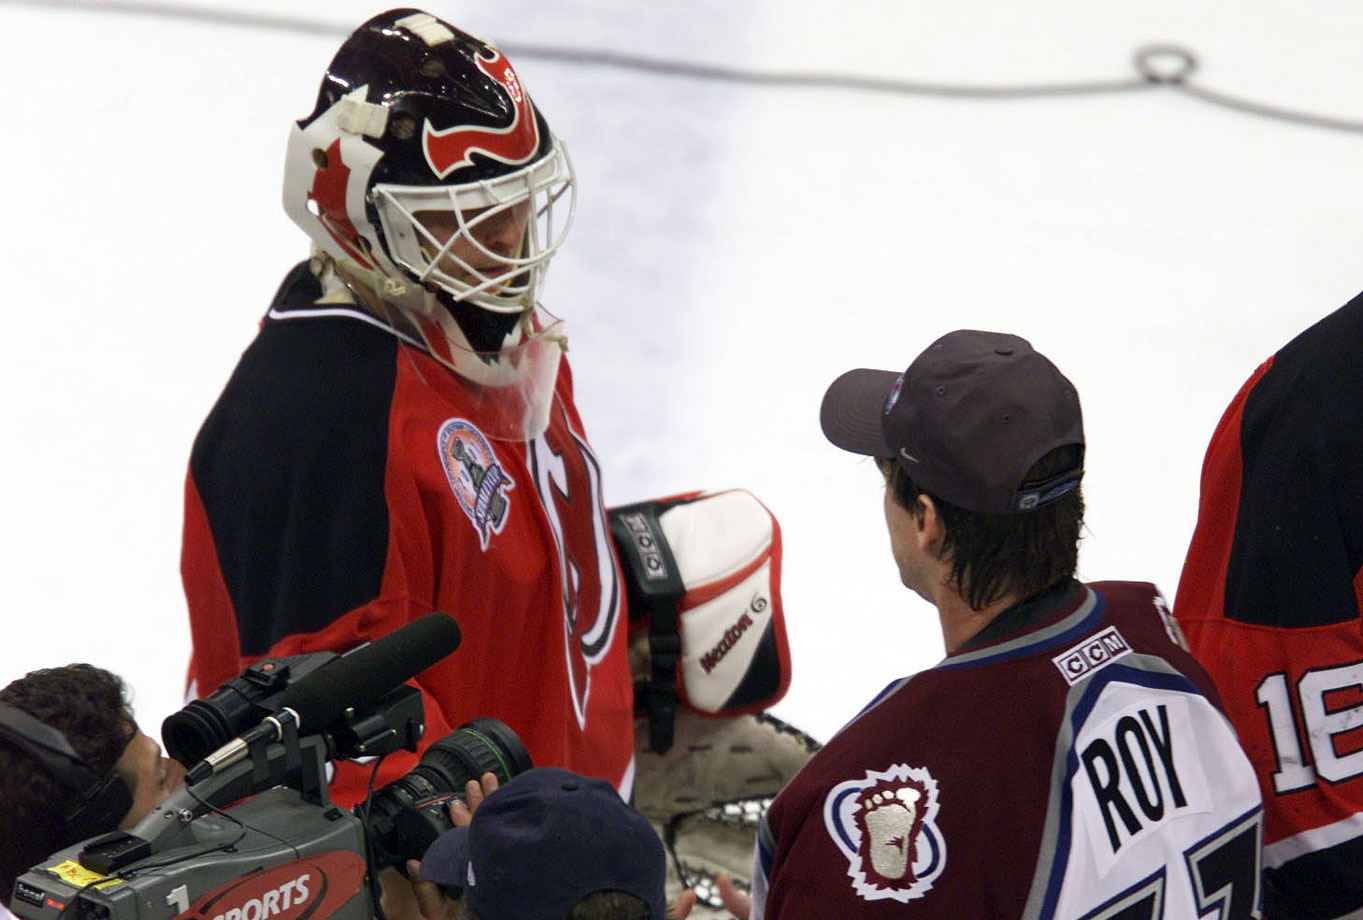 Seeking a repeat, Brodeur faced his childhood hero Patrick Roy in a memorable 2001 Stanley Cup Final, won by Colorado in seven games after the Avalanche rose from a three-games-to-two deficit. Roy denied the Devils a chance to win the Cup on home ice with a 4-0 win in Game 6, then completed the comeback with a 3-1 win in Colorado.